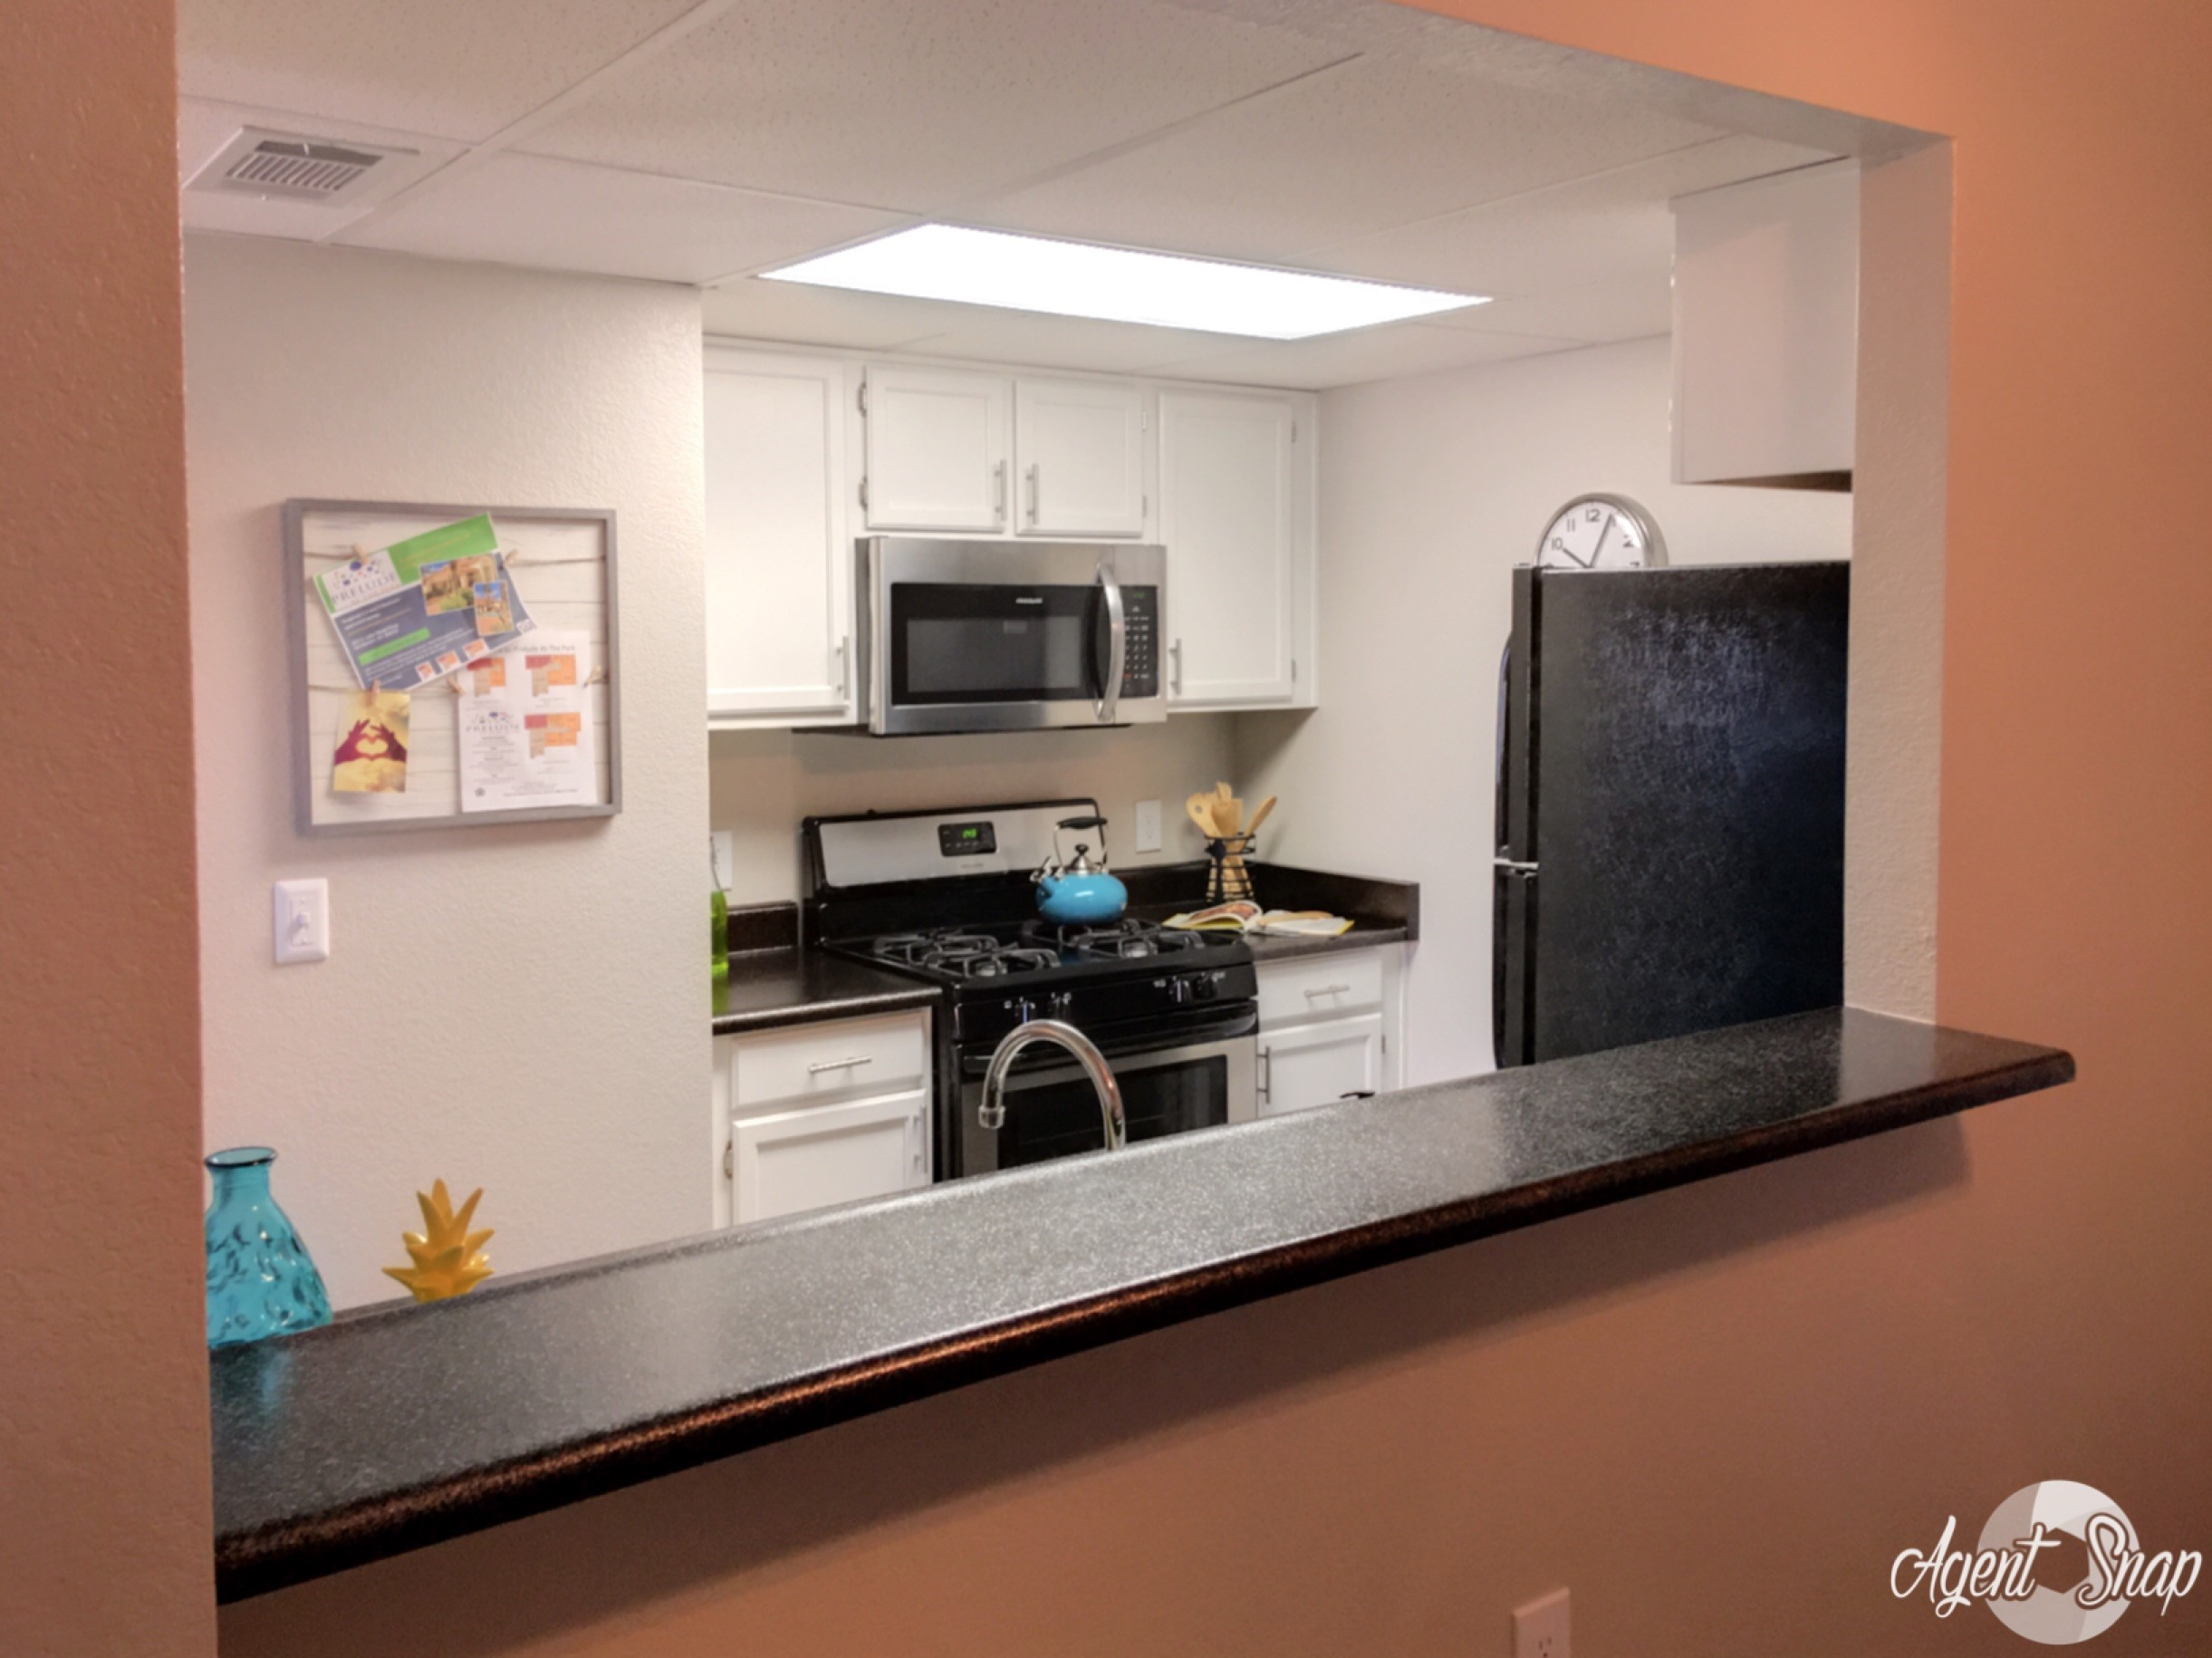 Kitchen with pass-through window, Apartments in 89015, Prelude at the Park